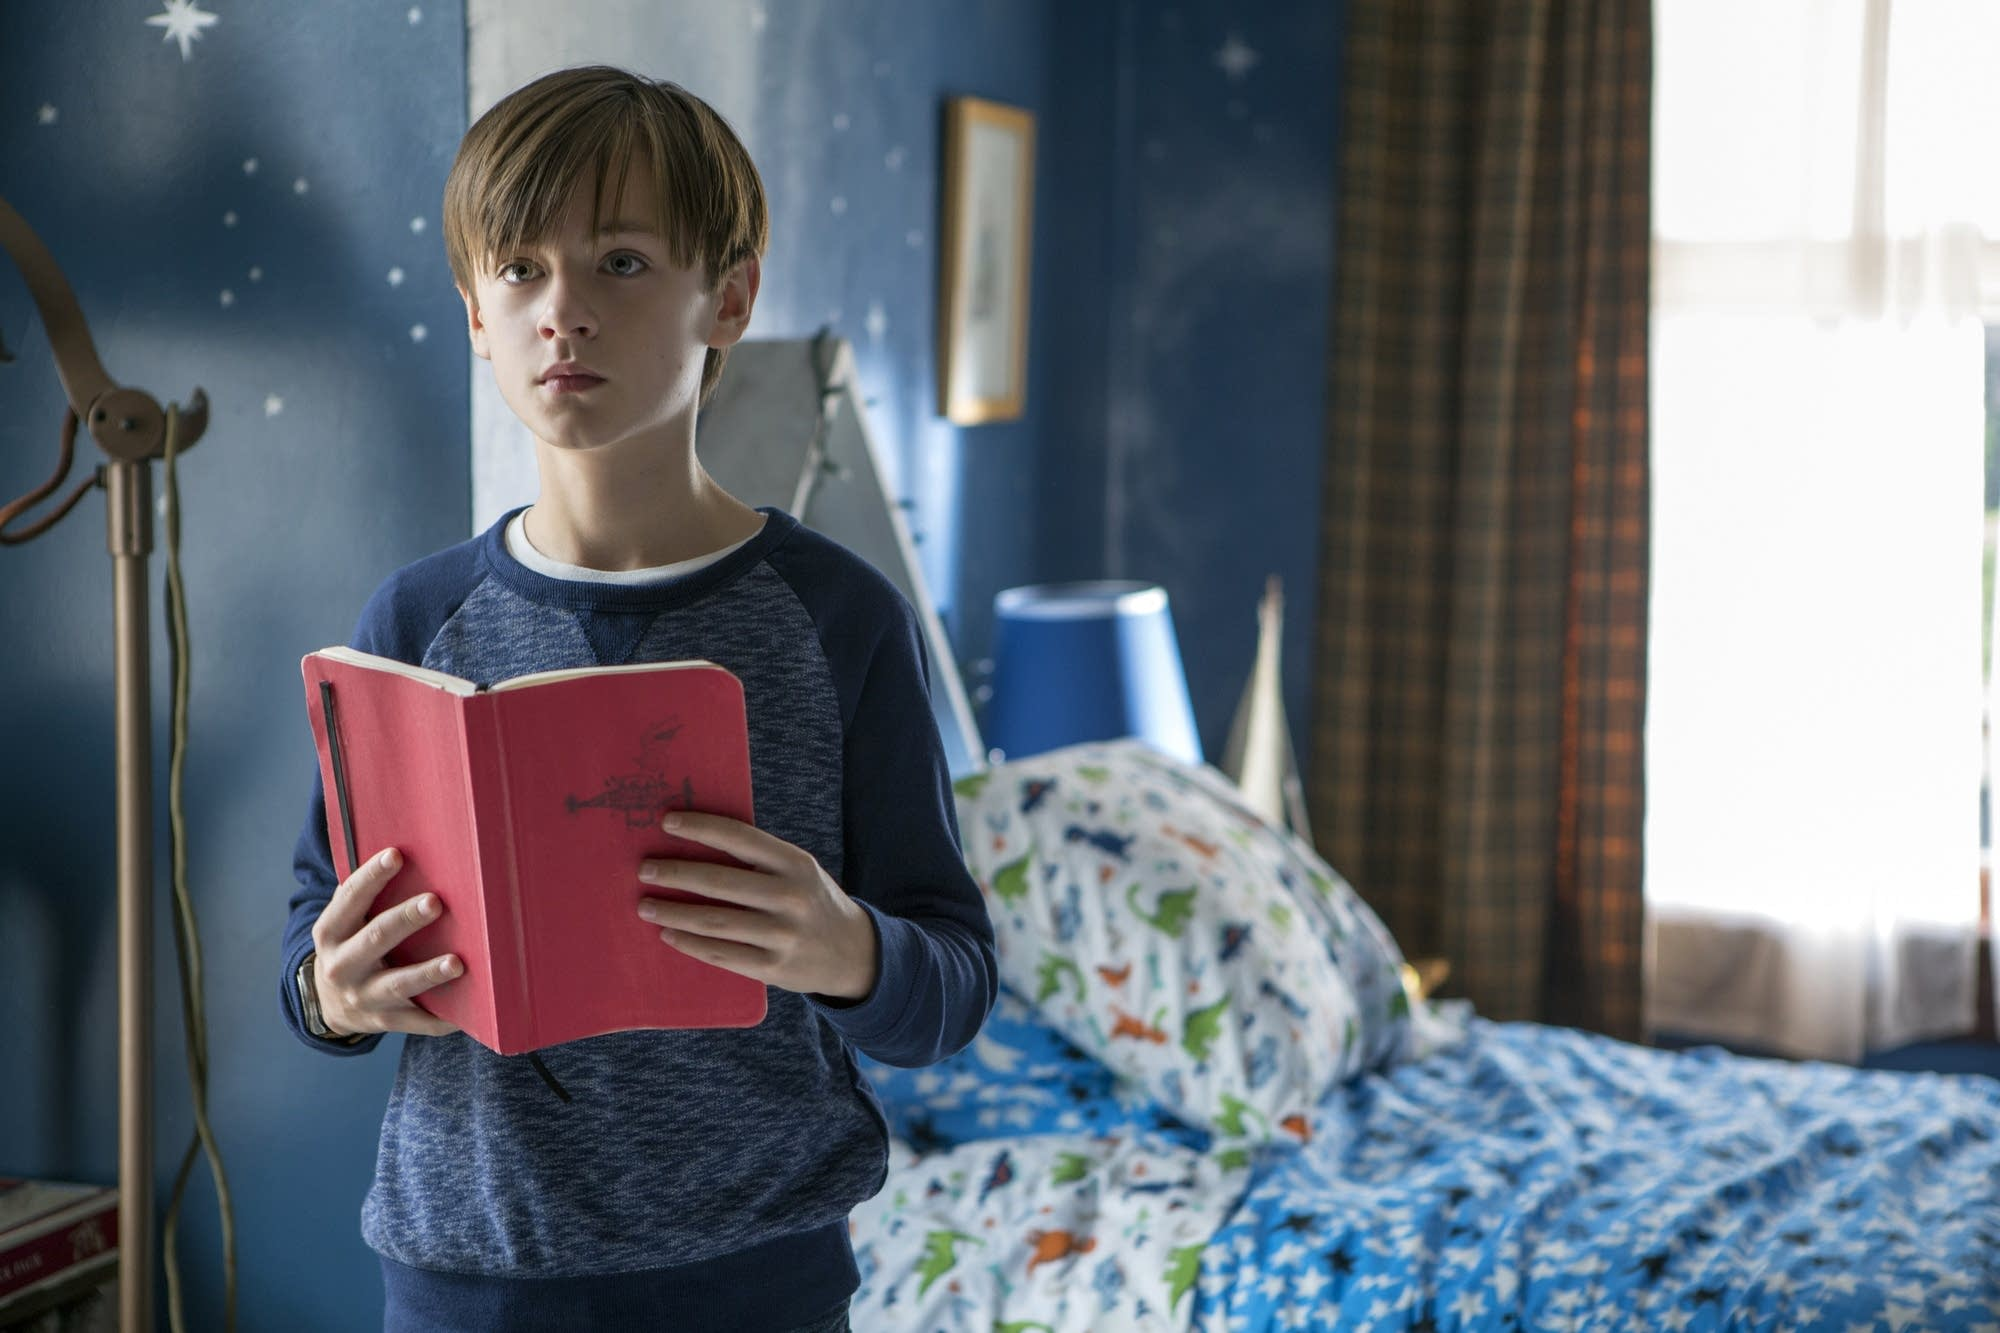 Jaeden Lieberher as Henry, a precocious 11-year-old